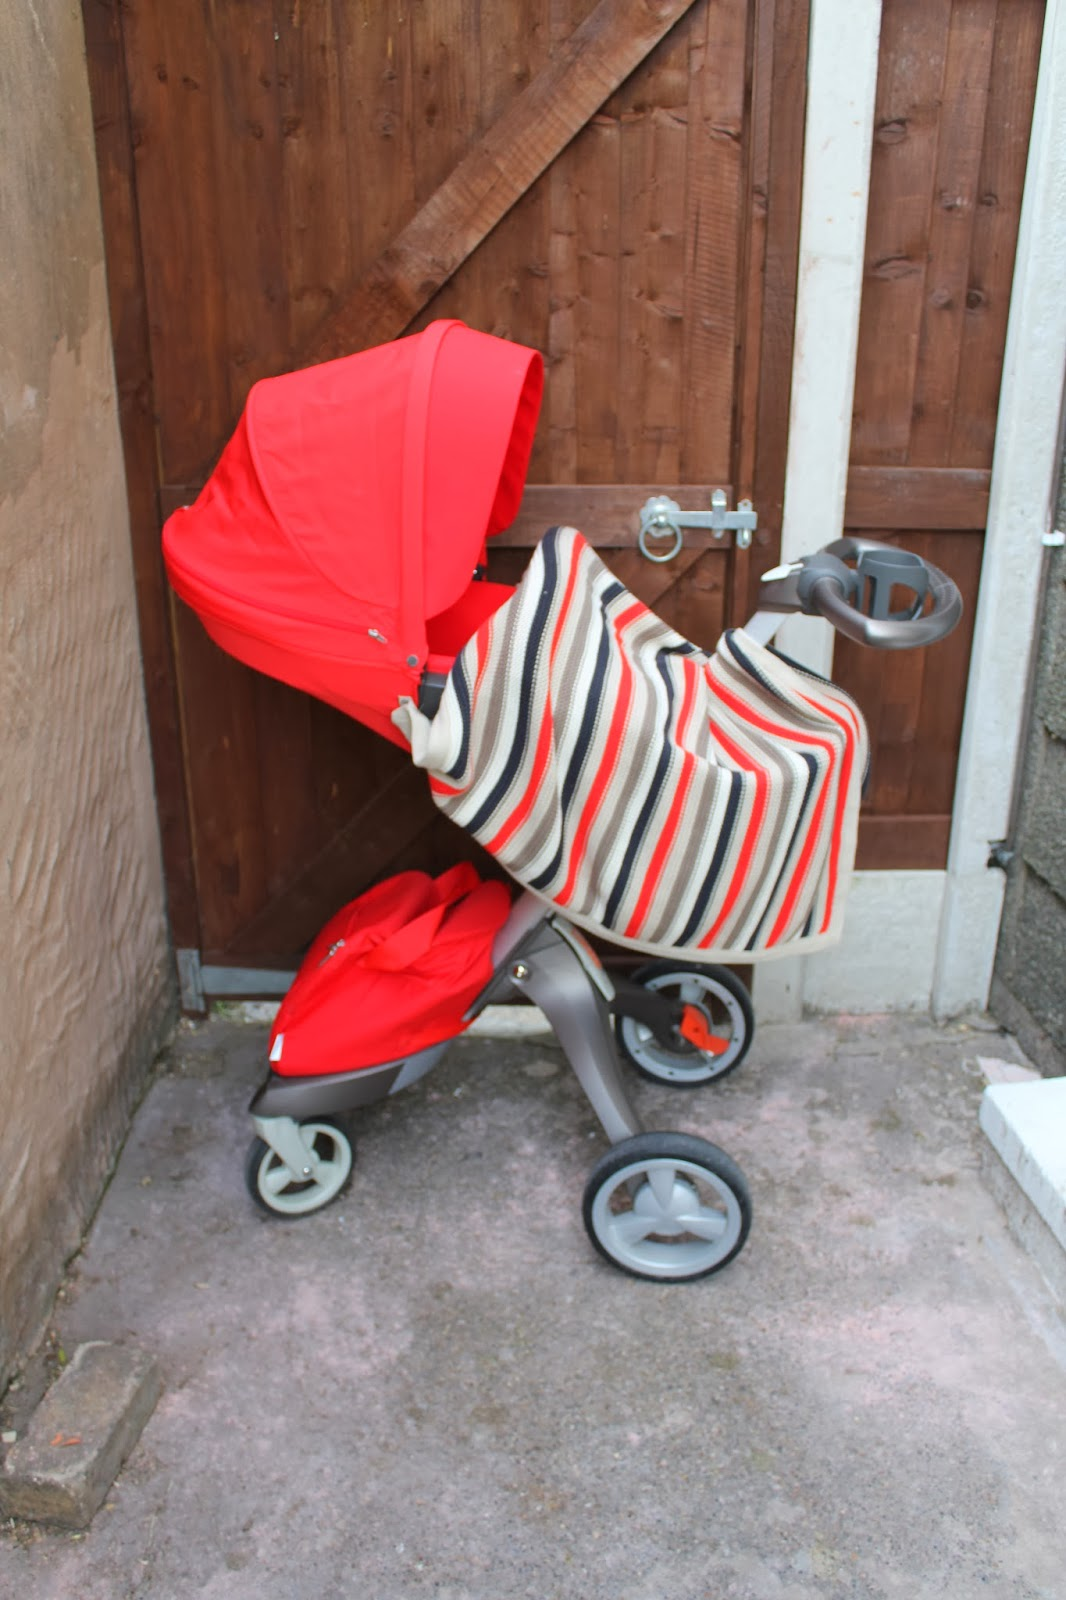 Matching stripe blanket for the red Stokke Xplory Textiles